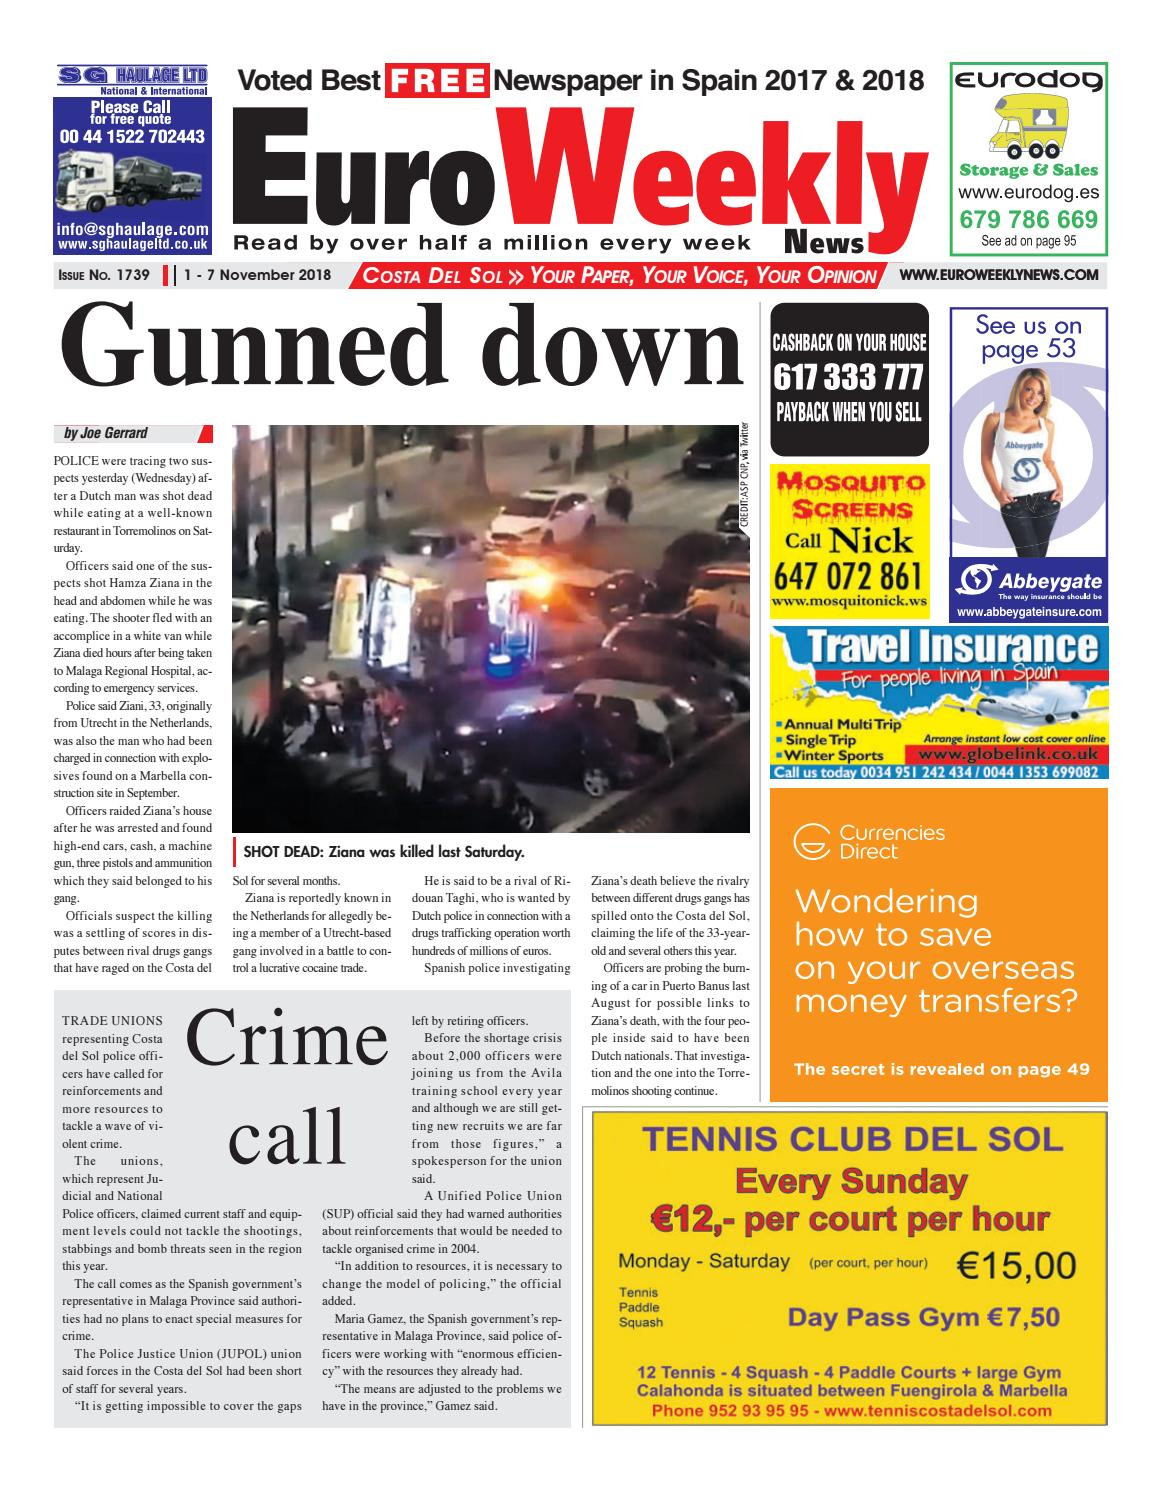 21aeef8509 Euro Weekly News - Costa del Sol November 1-7 2018 Issue 1739 by Euro  Weekly News Media S.A. - issuu